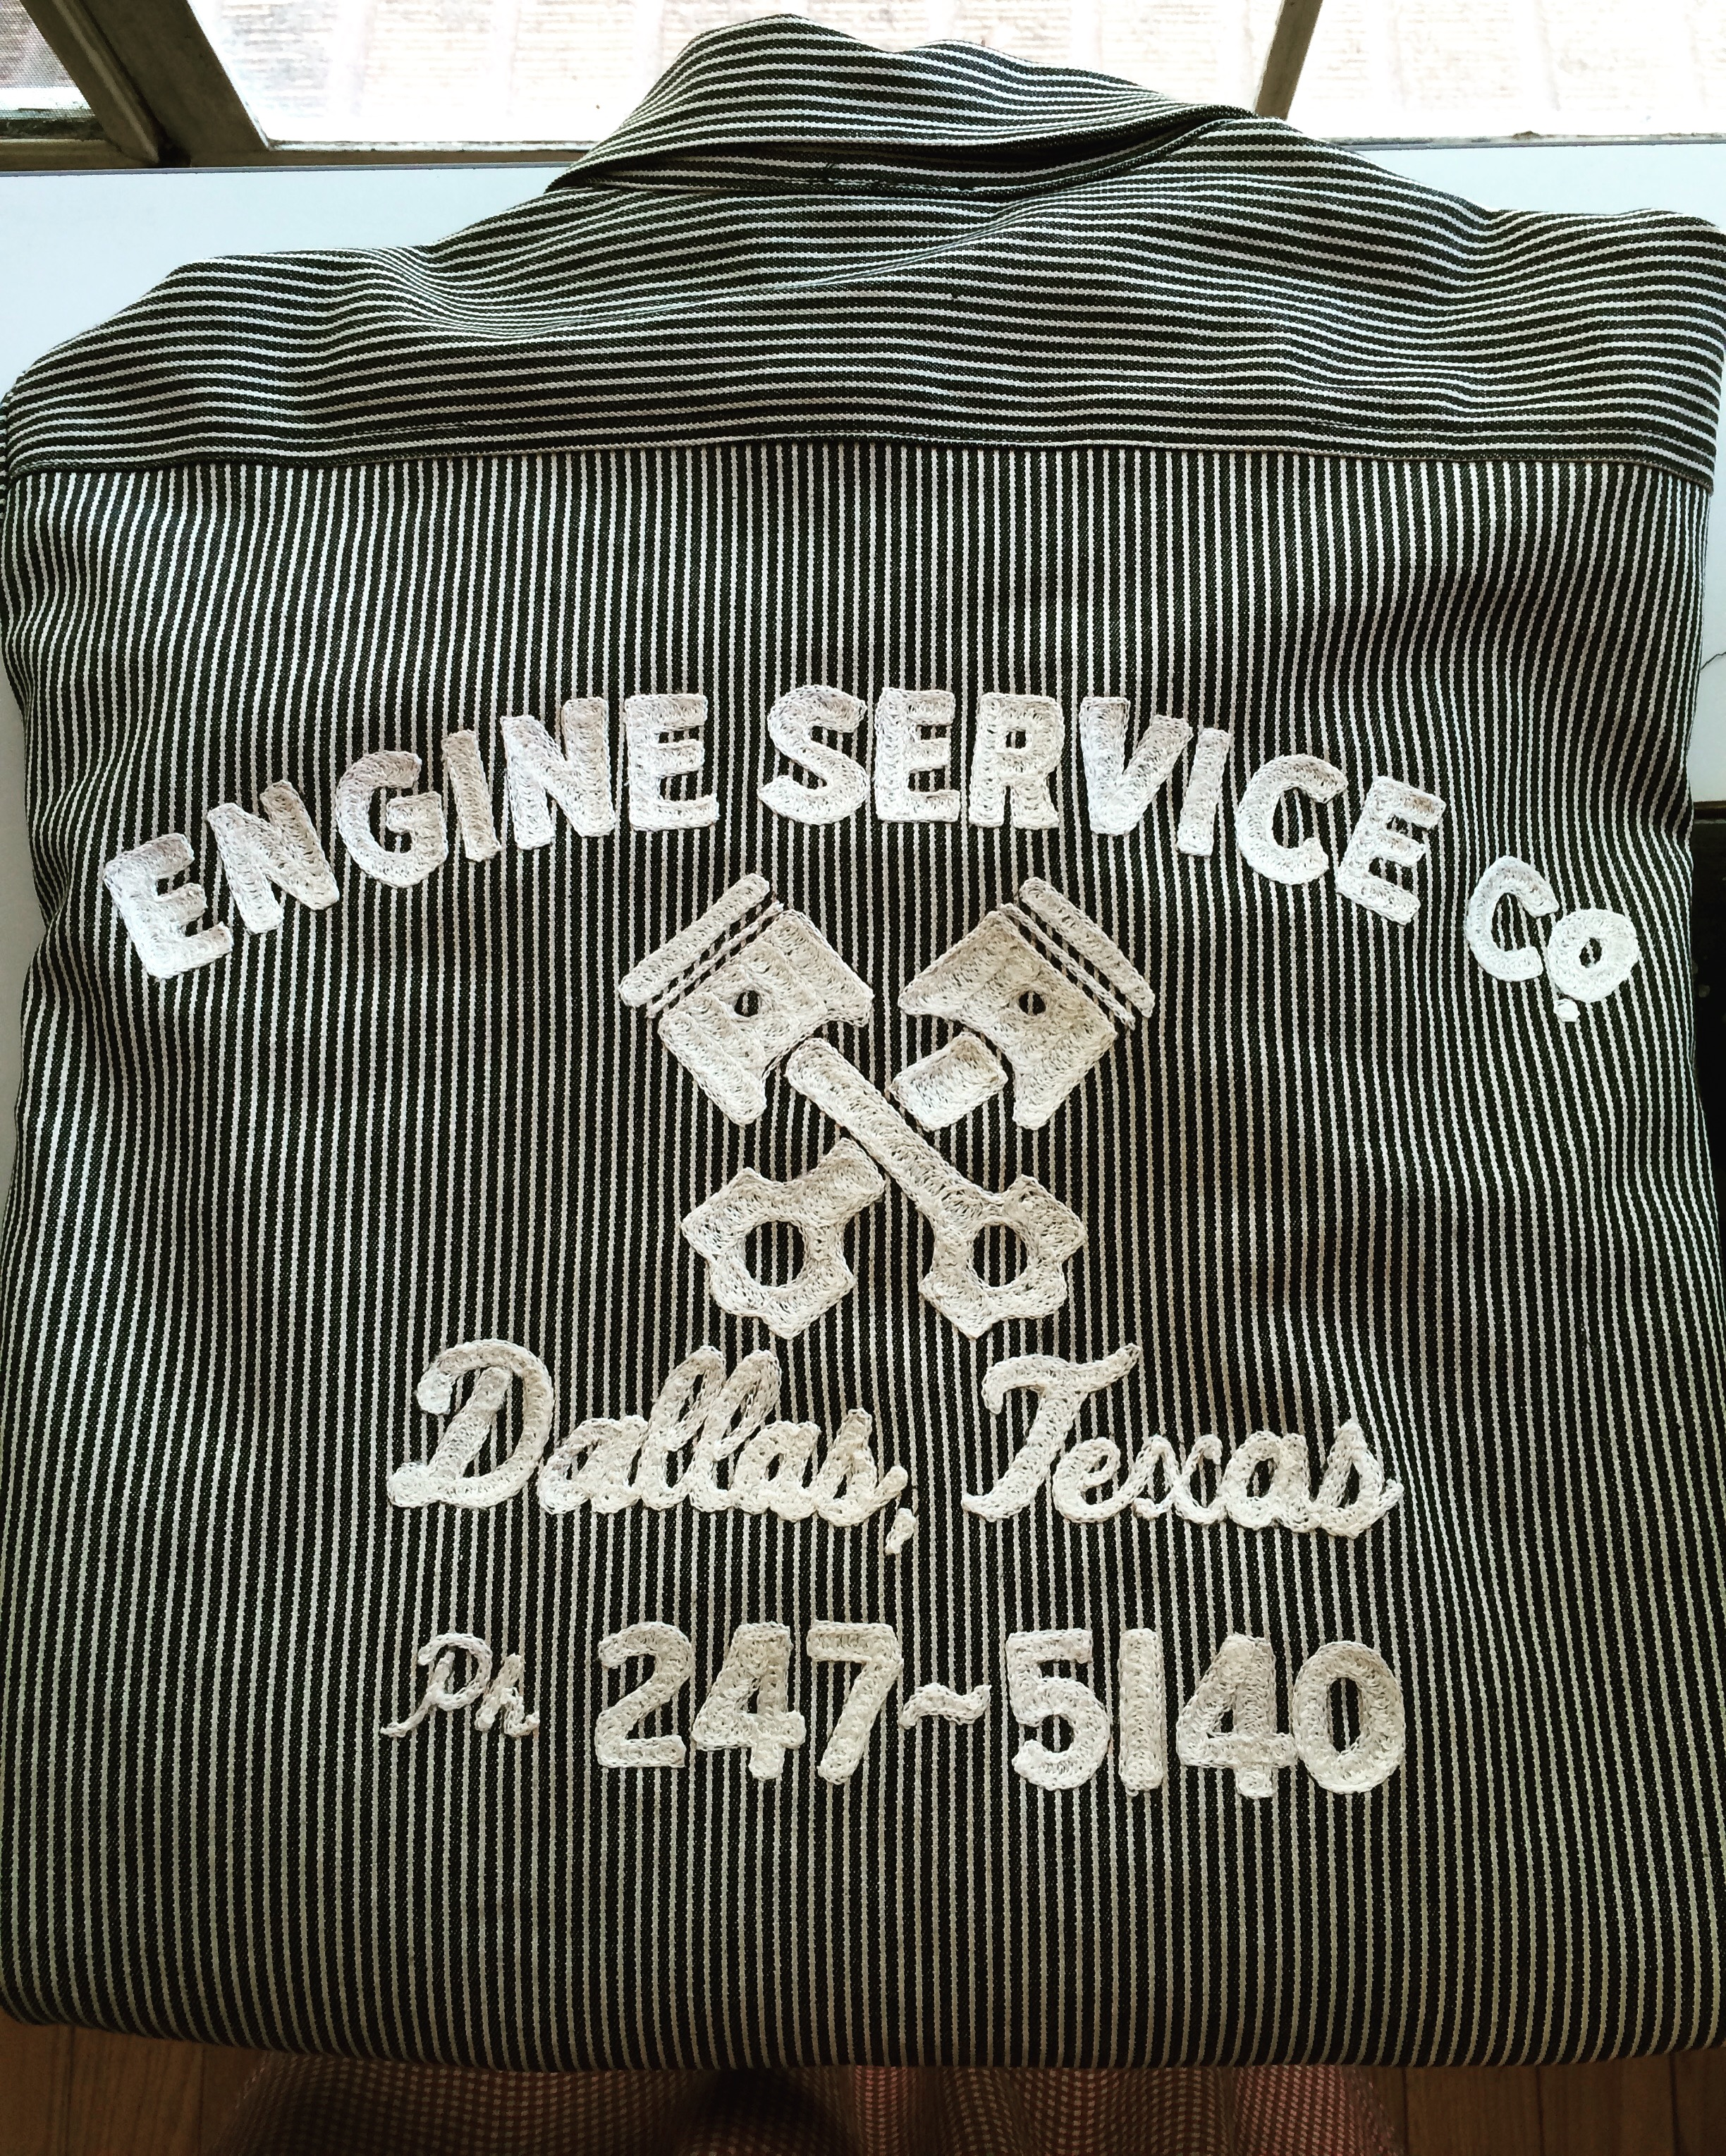 Auto shop jacket embroidery